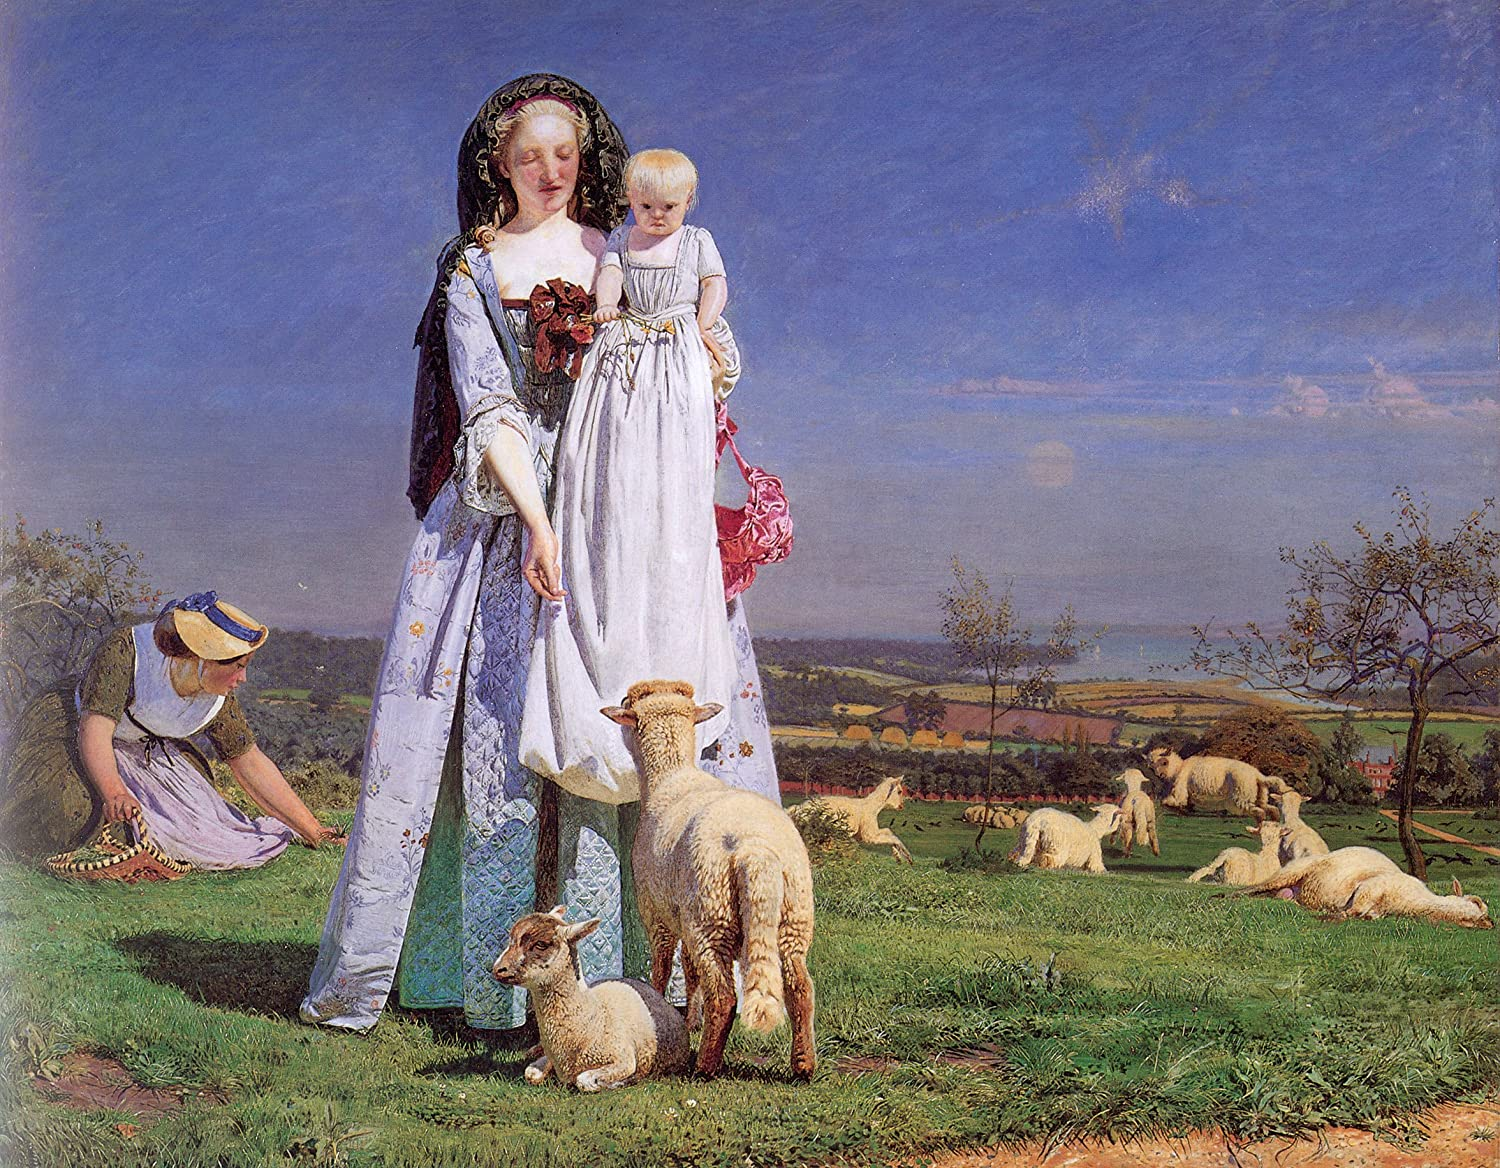 The Pretty Baa Lambs By Ford Madox Brown 16 X 20 Premium Canvas Print Posters Prints